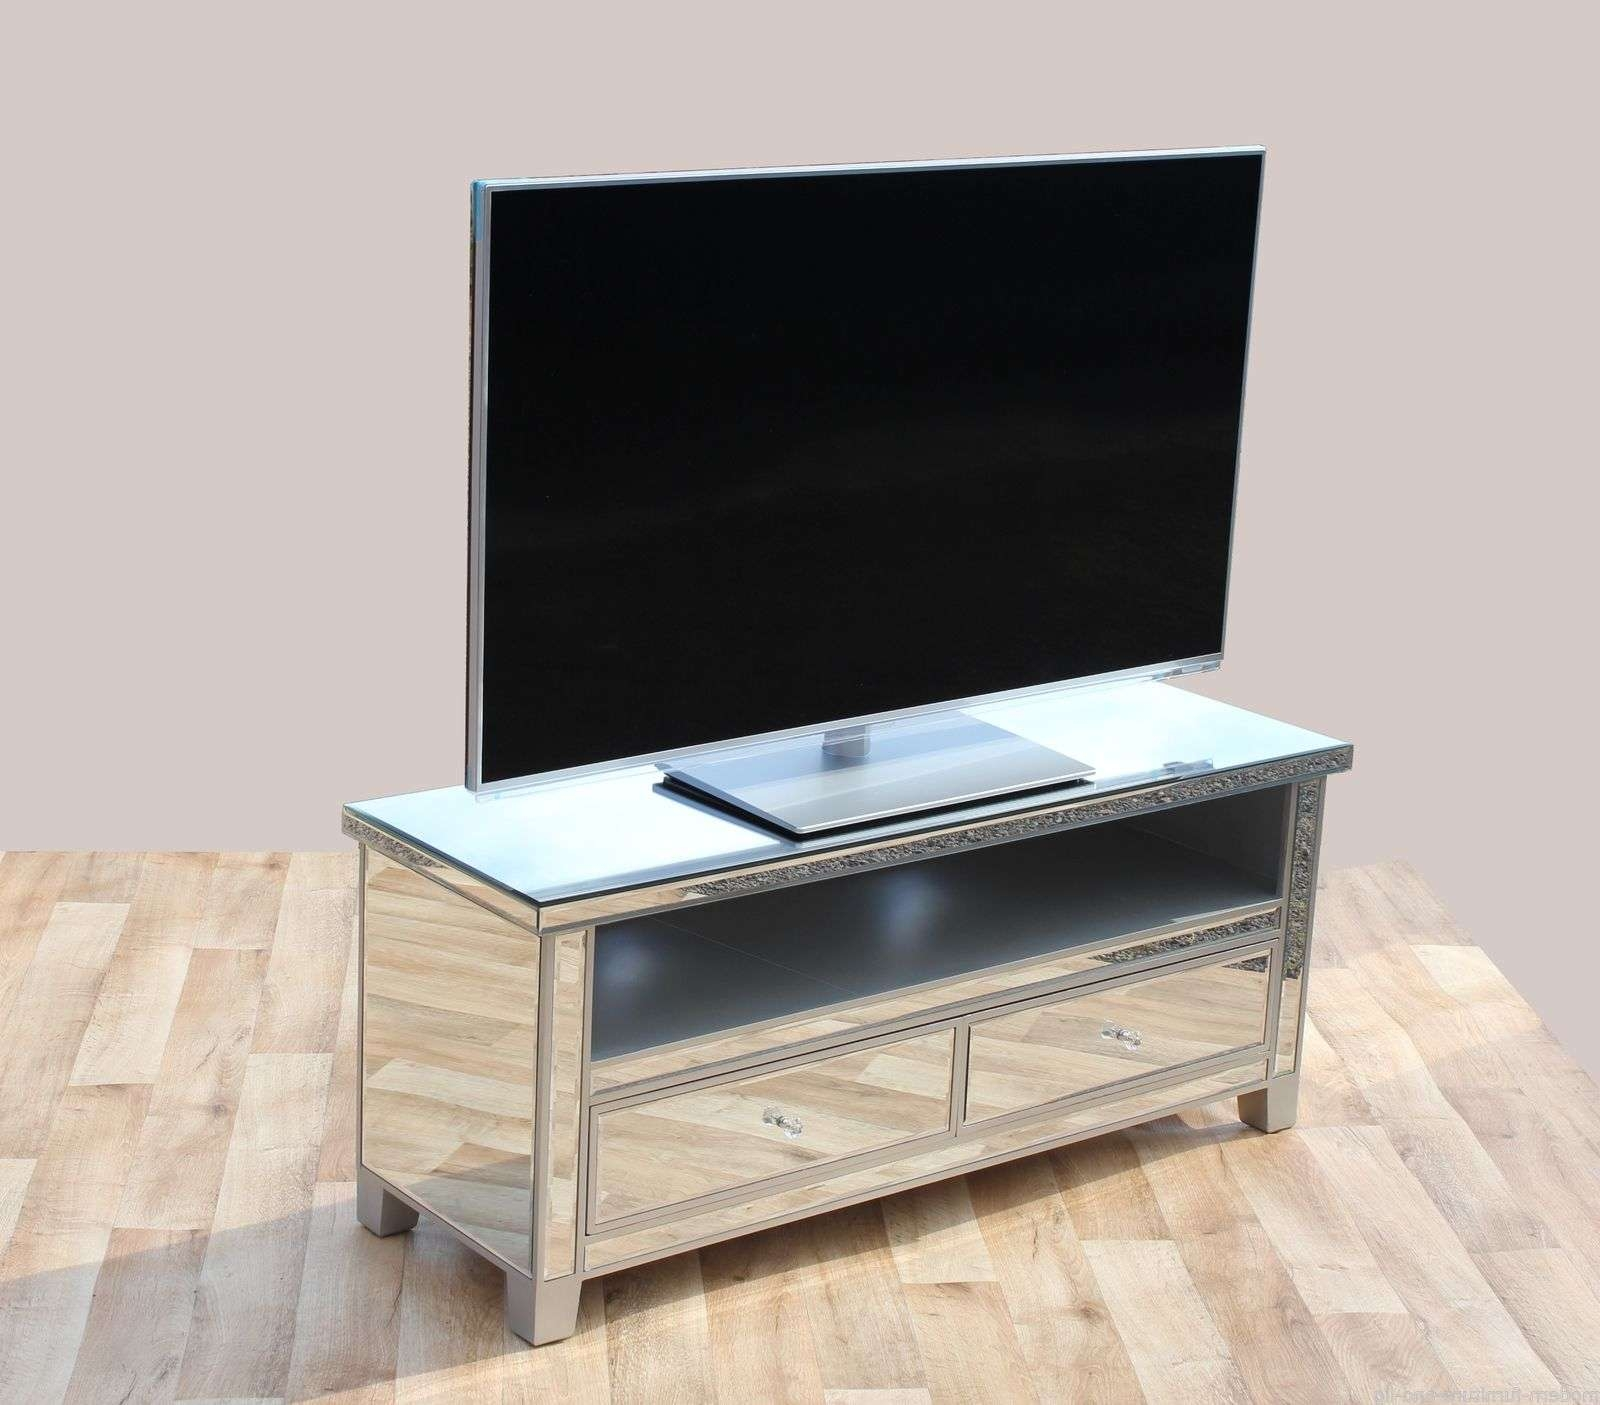 Home Design : Wonderful Mirror Tv Stand 57 25 Home Design Mirror Pertaining To Silver Tv Stands (View 5 of 15)